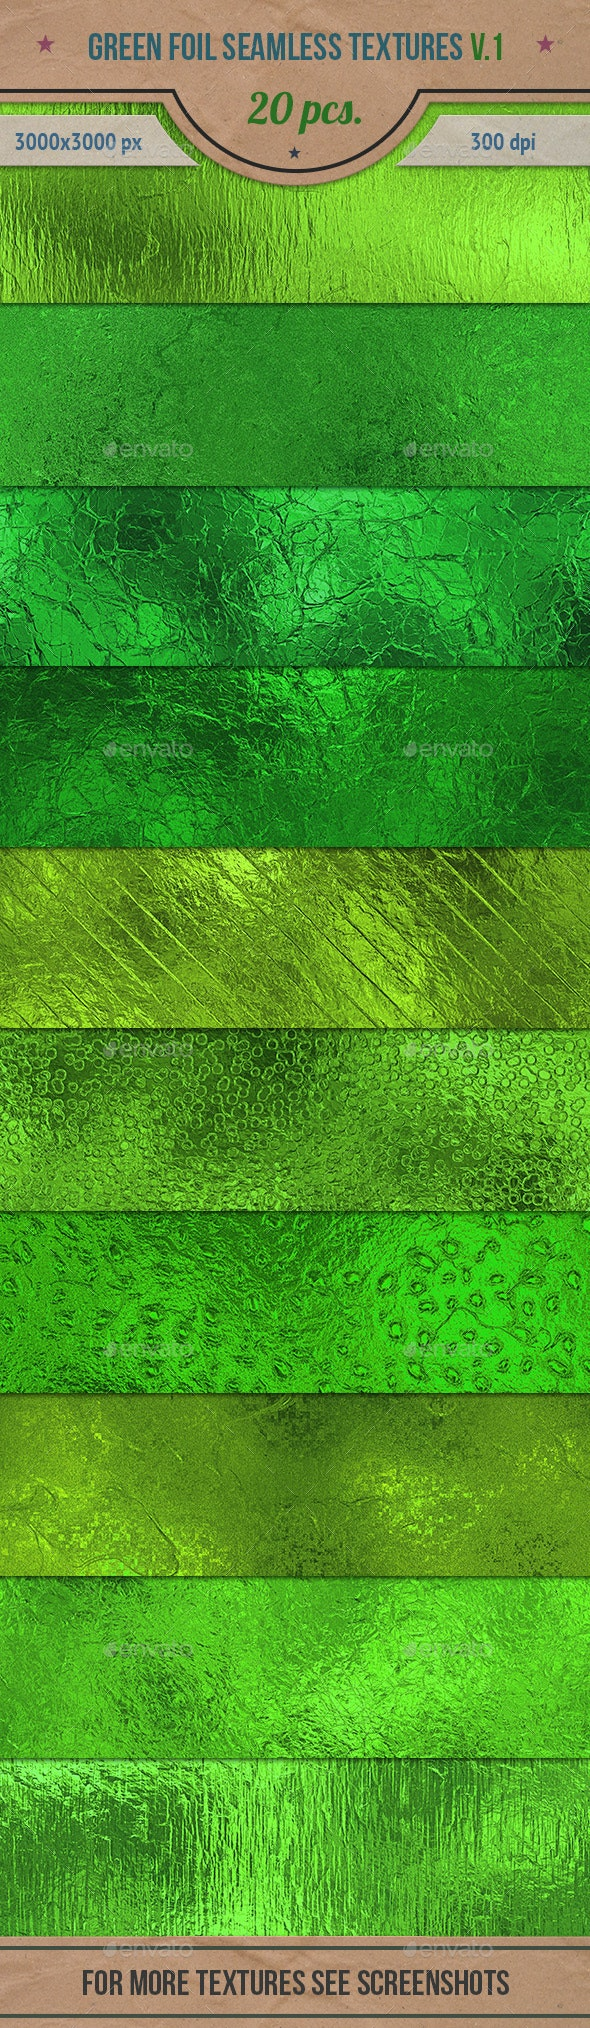 Green Foil Seamless Textures Pack v.1 - Textures